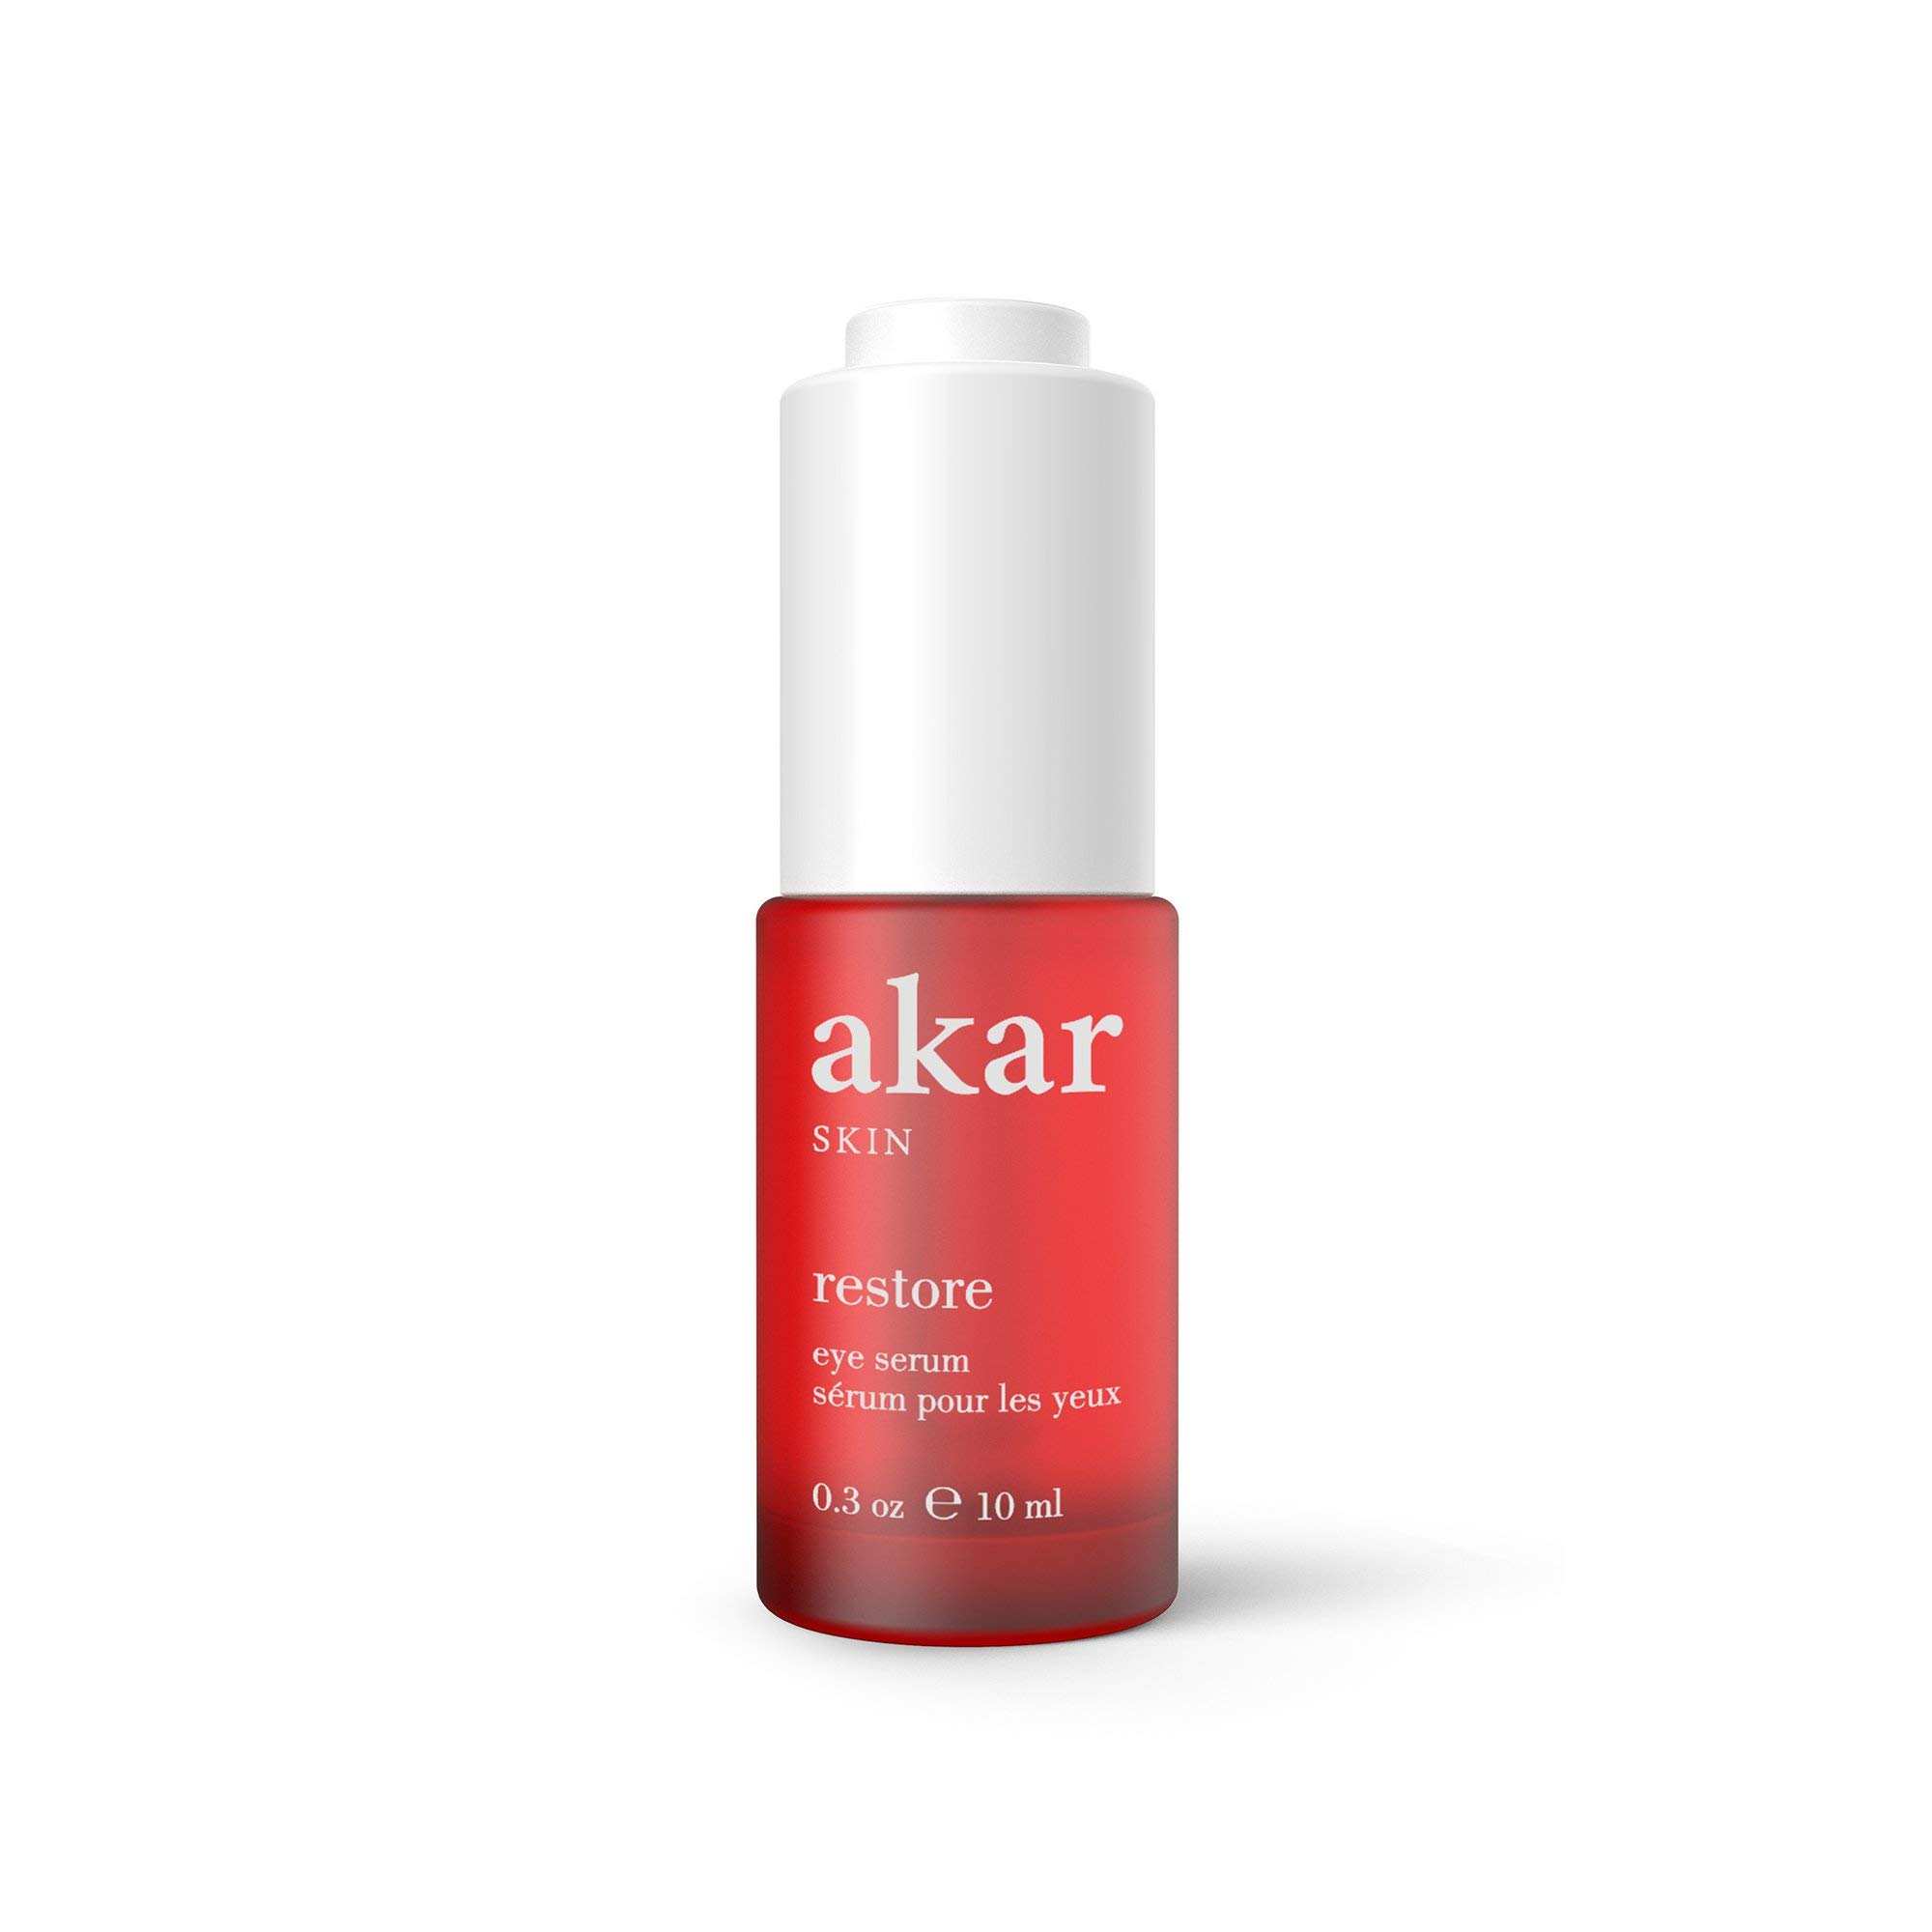 Akar Skin - Natural Nutrient Boost Eye Serum, 10 ml / 0.3 oz